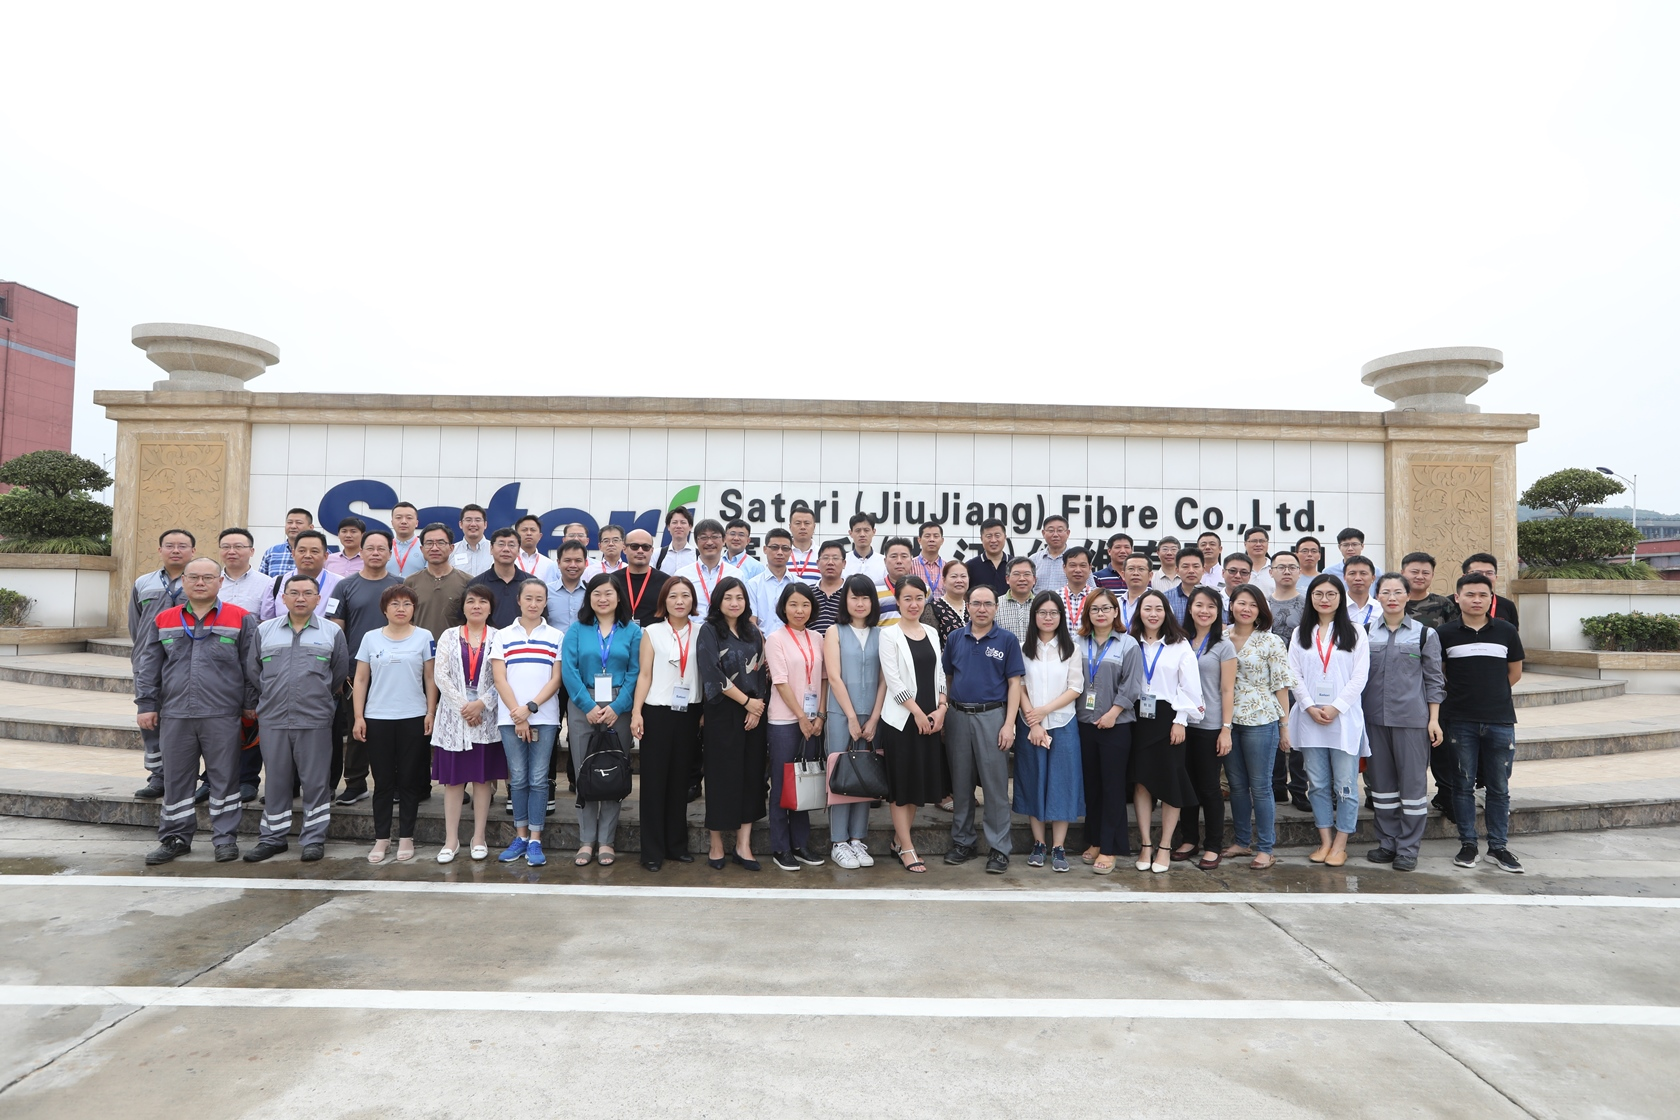 Sateri Hosts its First Major Viscose Seminar for Textile Customers